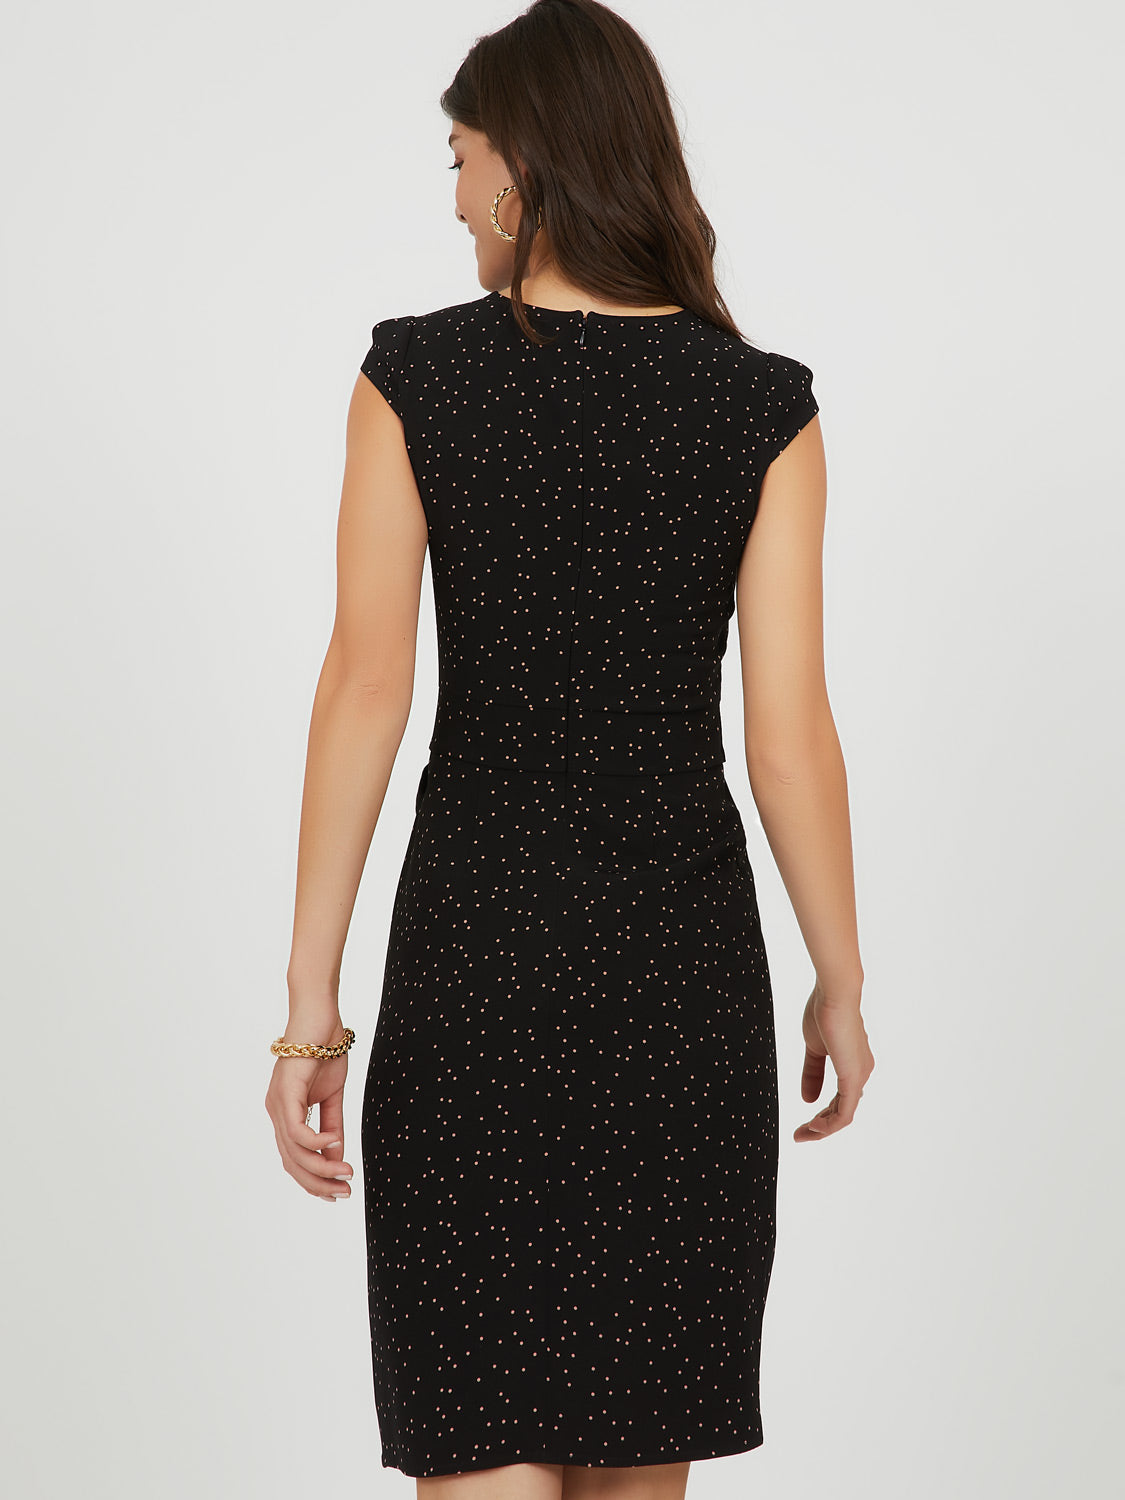 Scatter Dot Sheath Mini Dress